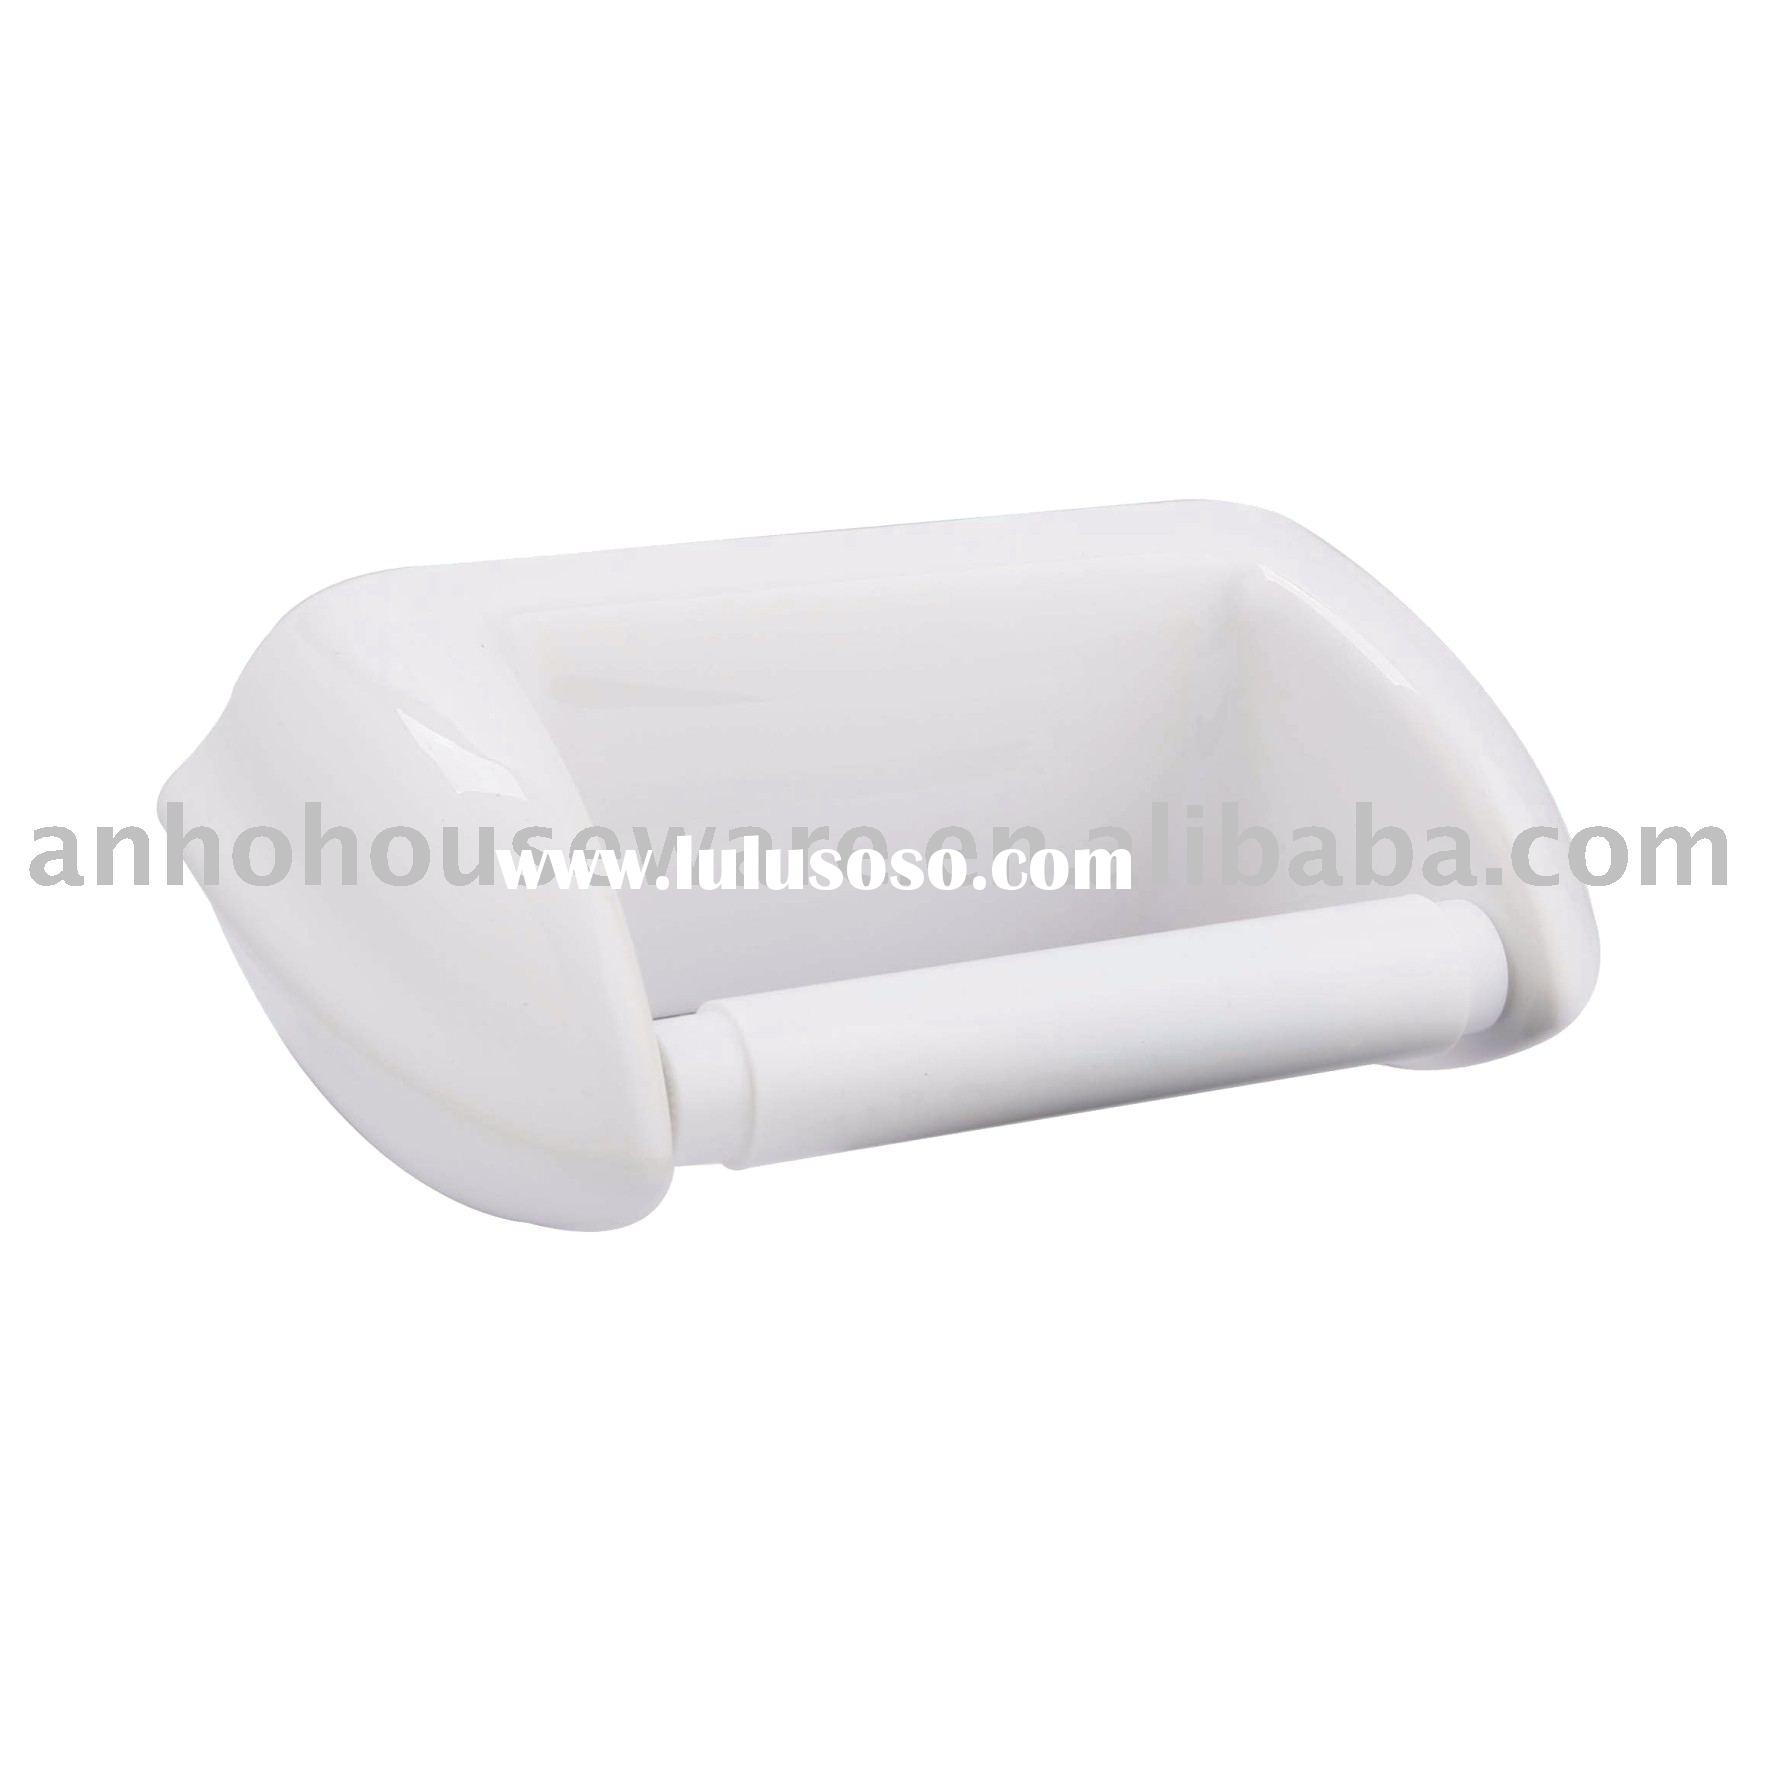 Ceramic Toilet Holder Manufacturers In Lulusoso Page 1